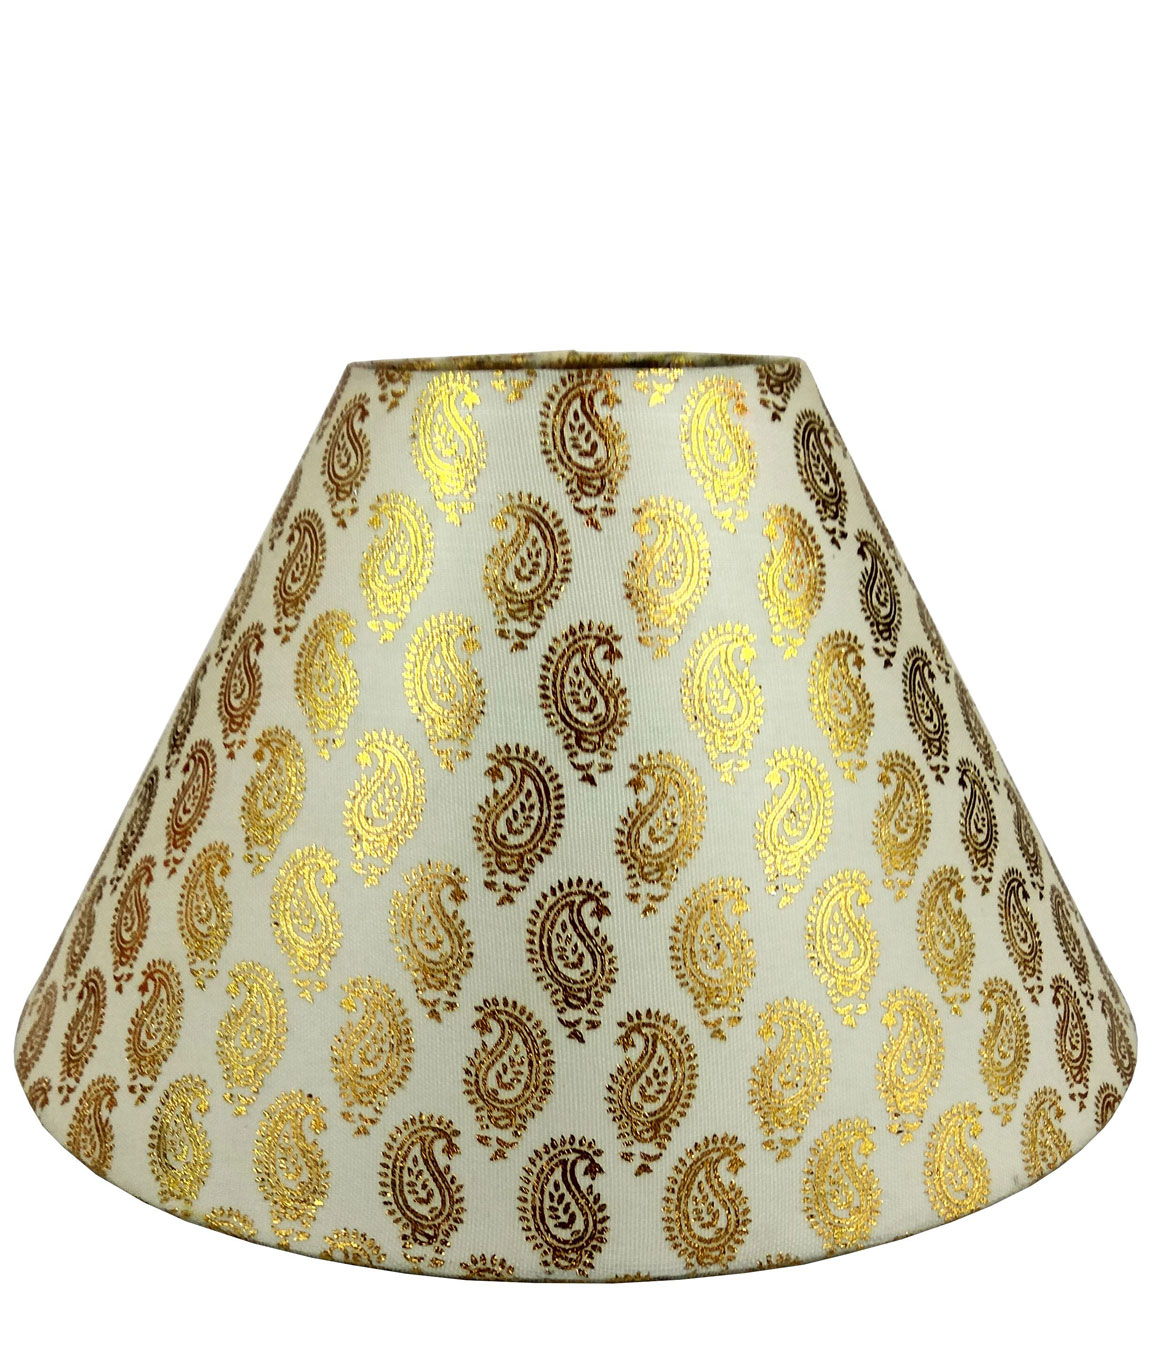 RDC 10 Inches Round Cream with Golden Designer Lamp Shade for Table Lamp